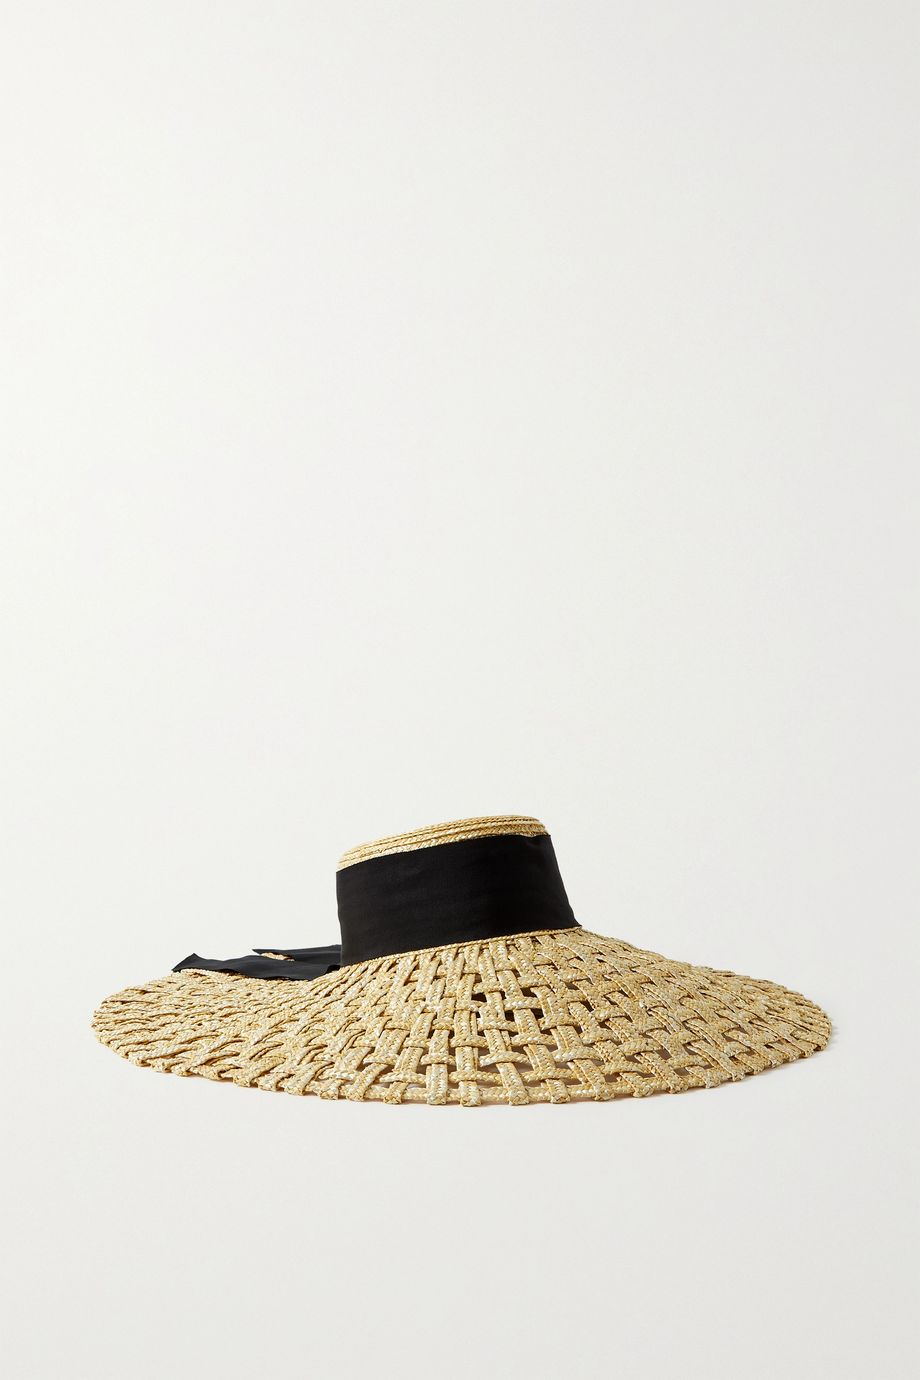 EUGENIA KIM Mirabel grosgrain-trimmed woven straw hat